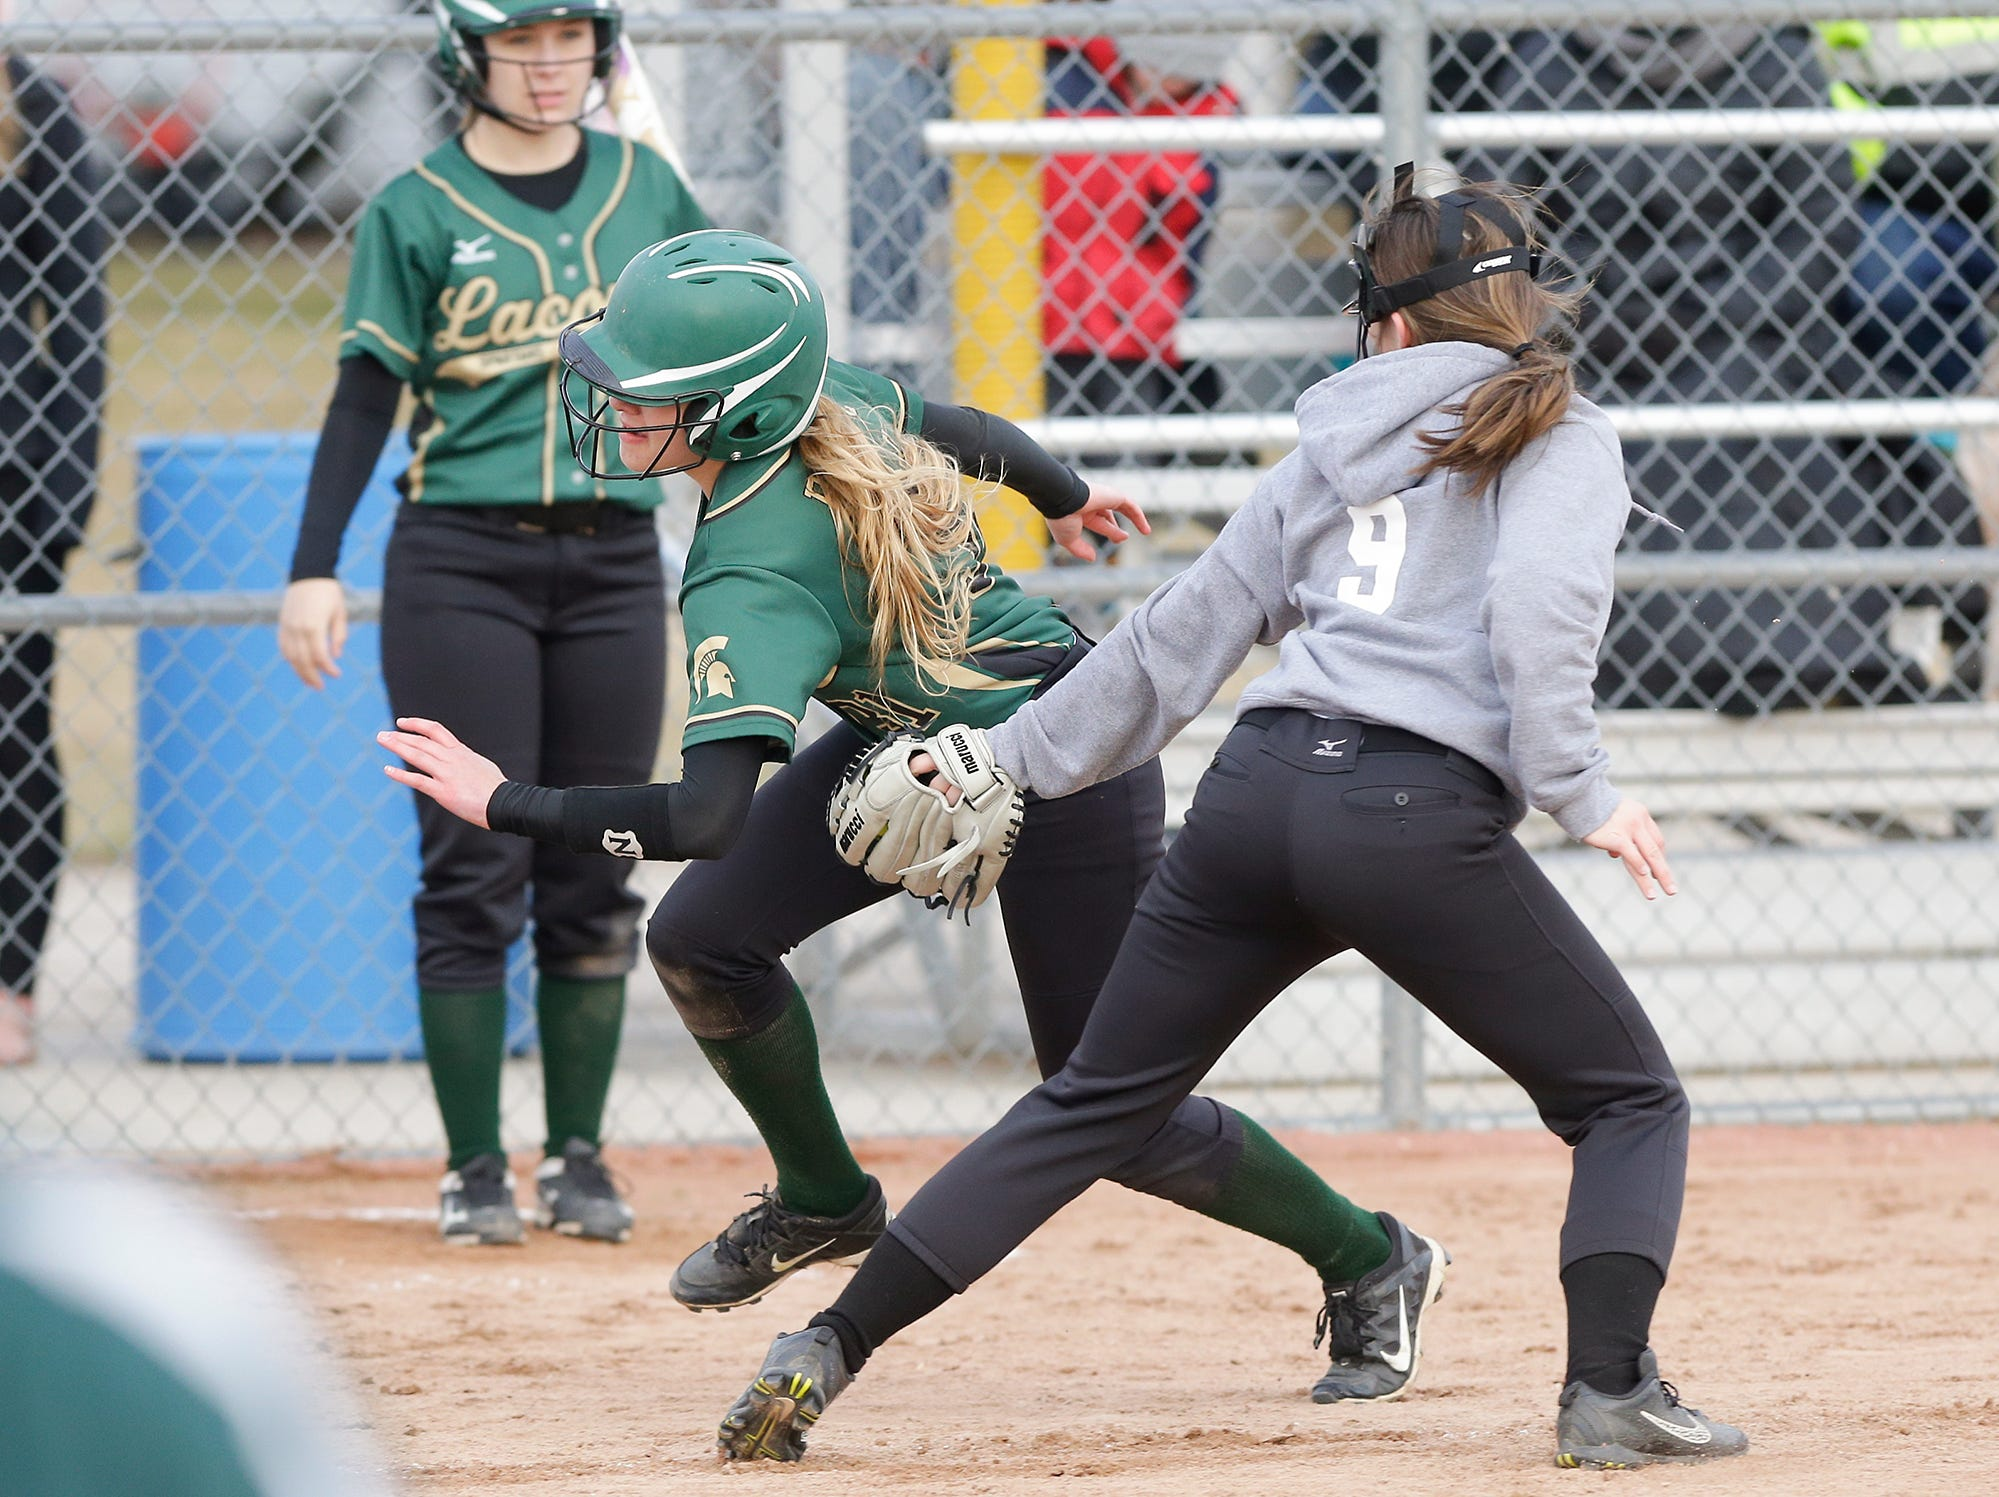 Laconia High School softball's Hailey Bartz avoids a tag at home from Winnebago Lutheran Academy's Shania Shea April 9, 2019 during their game in Fond du Lac, Wis. Laconia won the game 25-9. Doug Raflik/USA TODAY NETWORK-Wisconsin